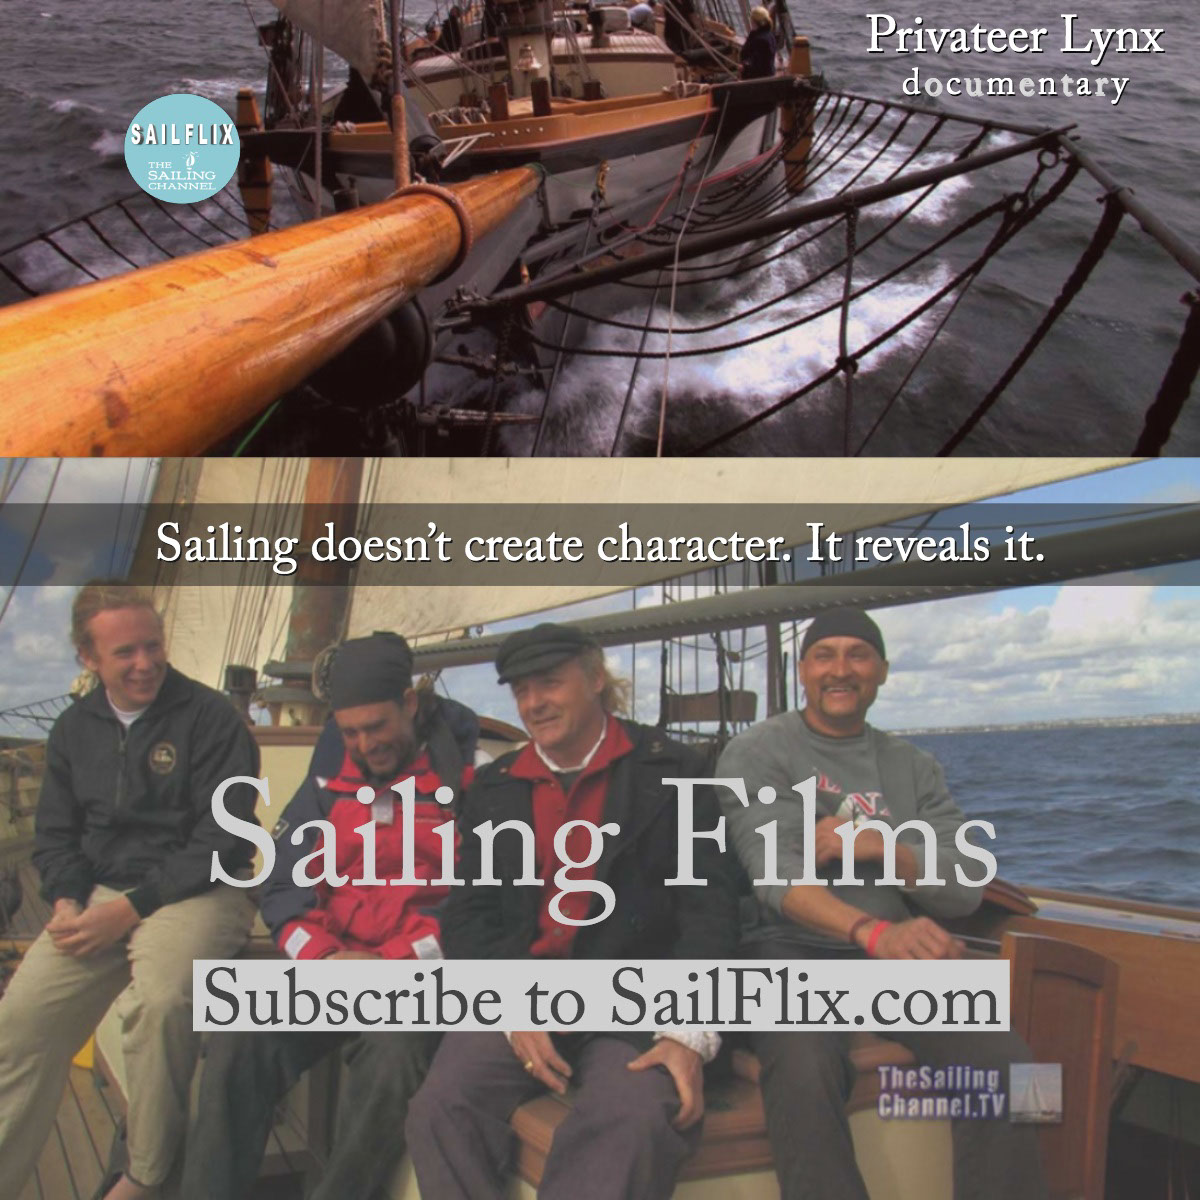 Sailing Films Sailing Films<P>Subscribe to SailFlix.com<P>Privateer Lynx<P>Sailing doesn't create character. It reveals it.<P>documentary